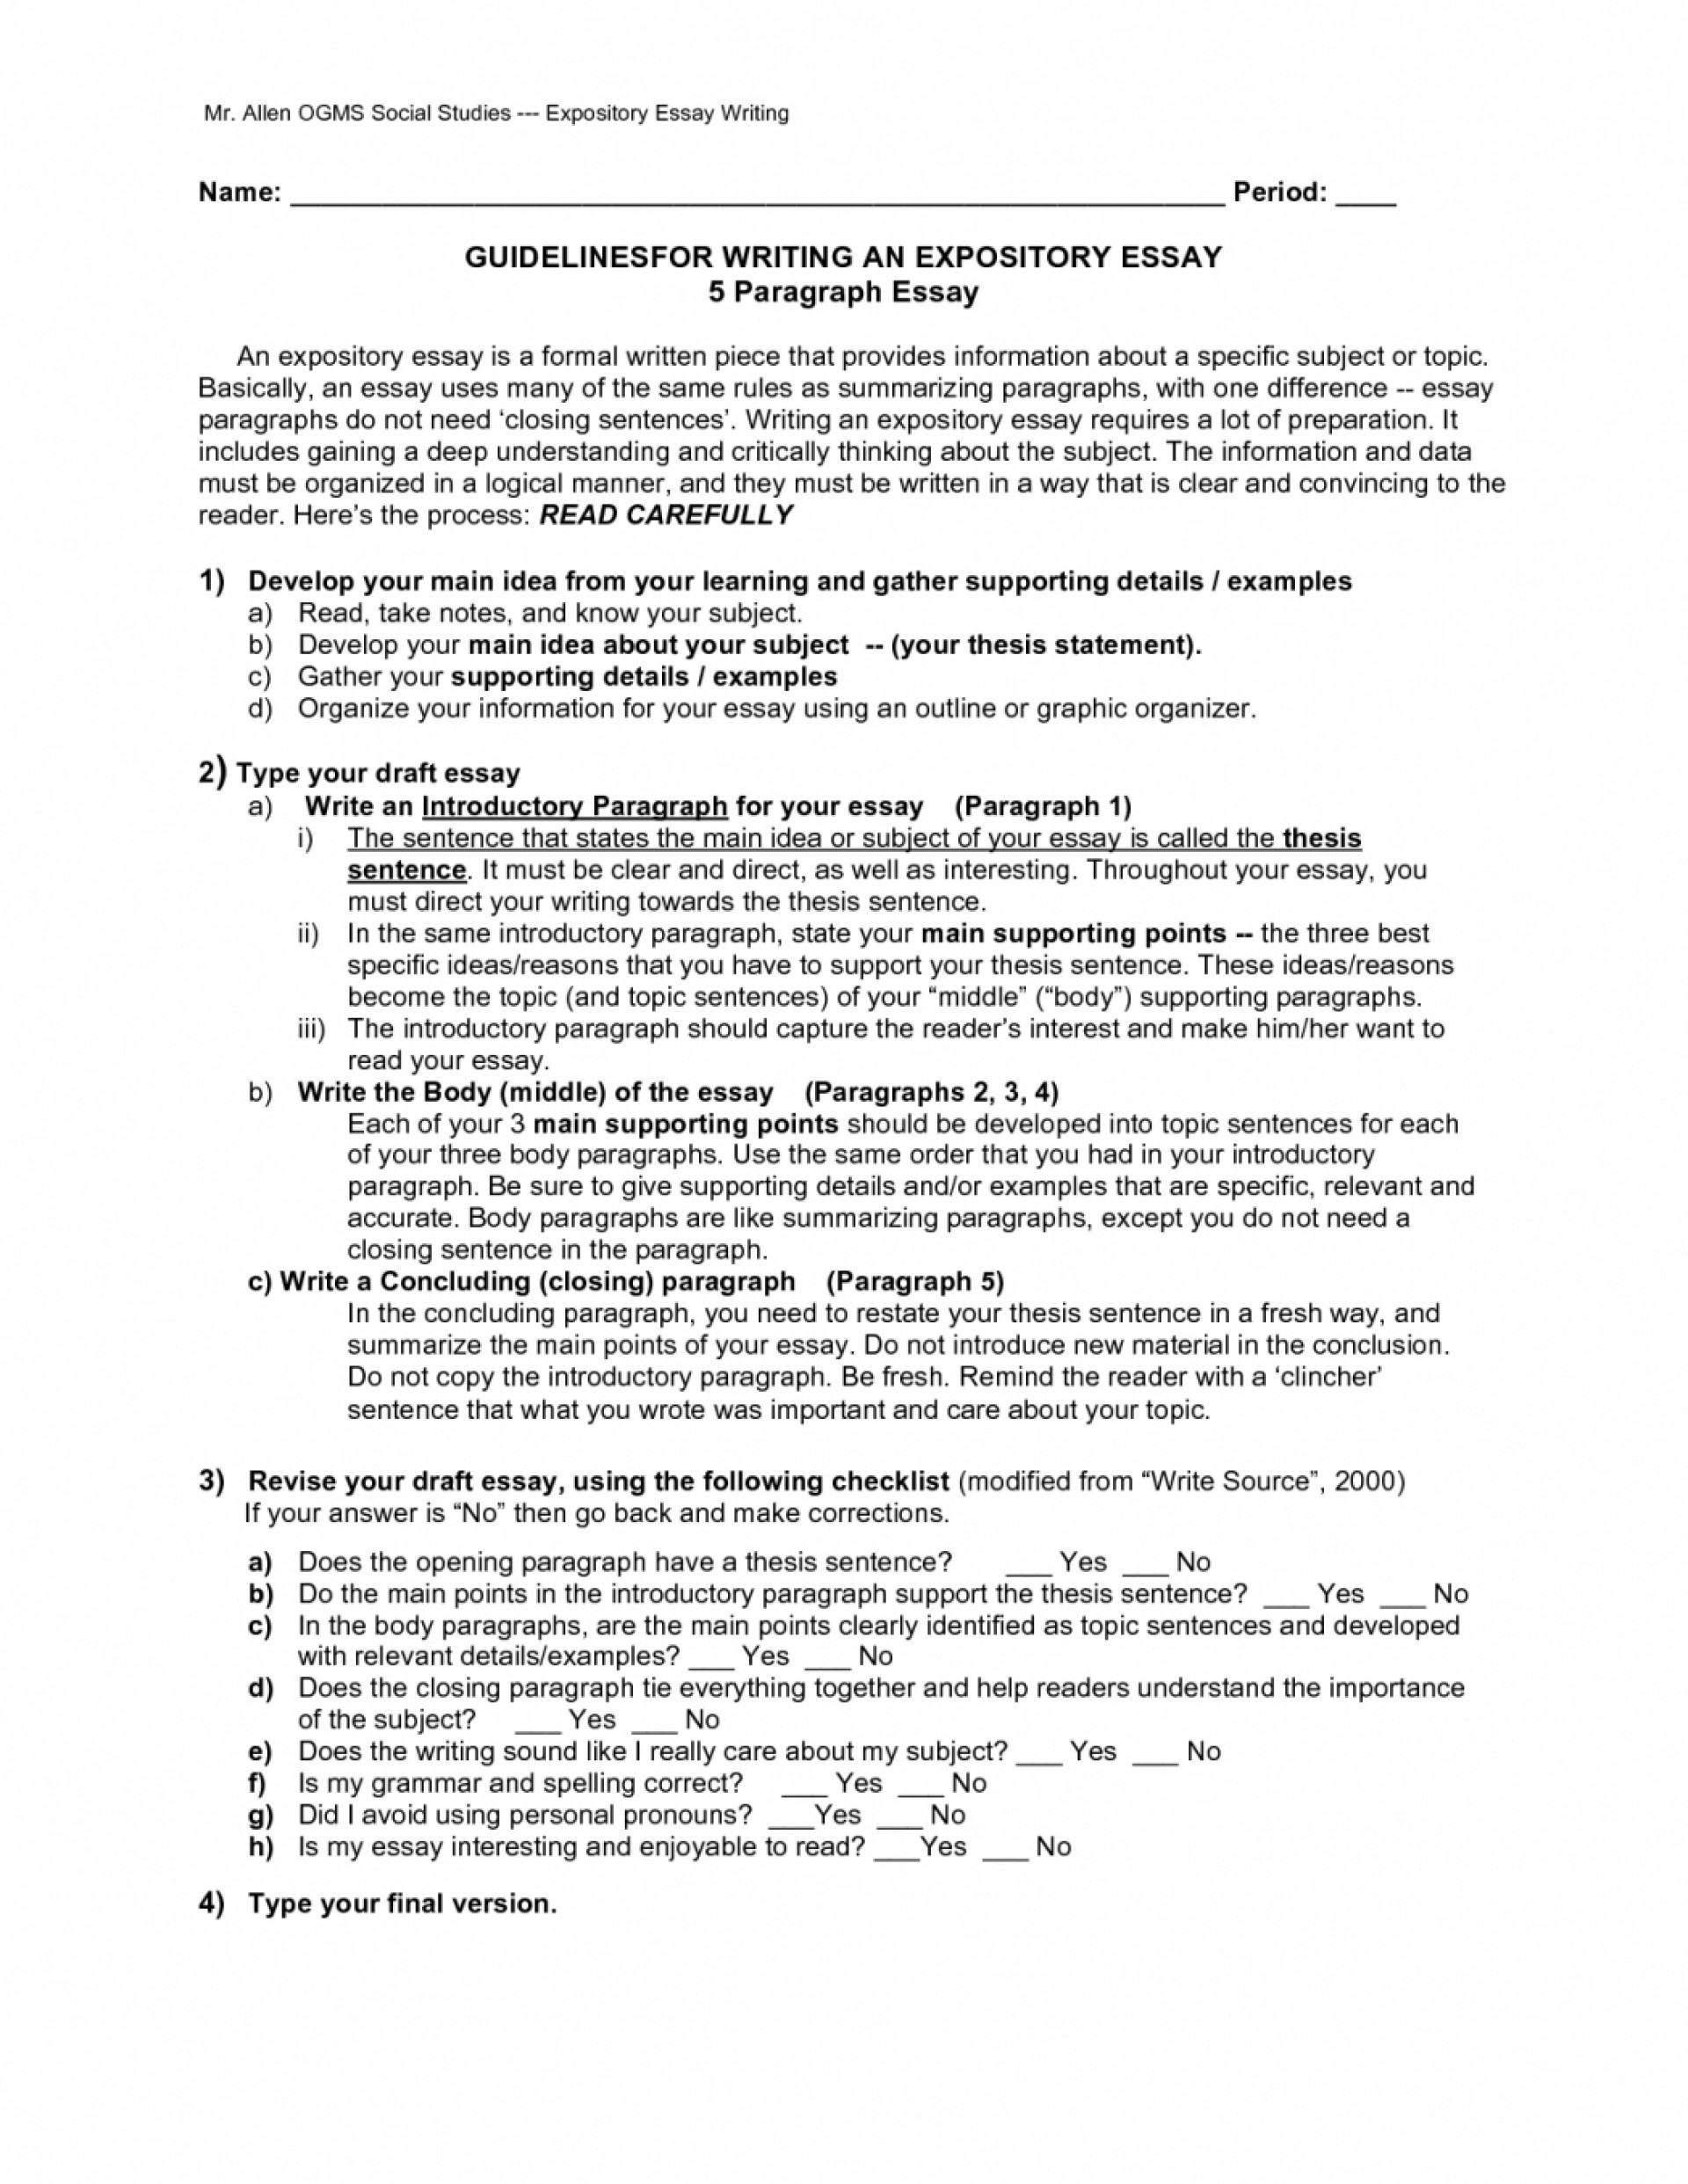 014 Essay Example Sample Of Cause And Effect From Thesis To Writing Howenage Pregnancy Persuasive Expository Statementmplate Hda About Argumentative In The Philippines 1048x1356 Astounding Teenage Photo Tagalog Introduction Causes 1920